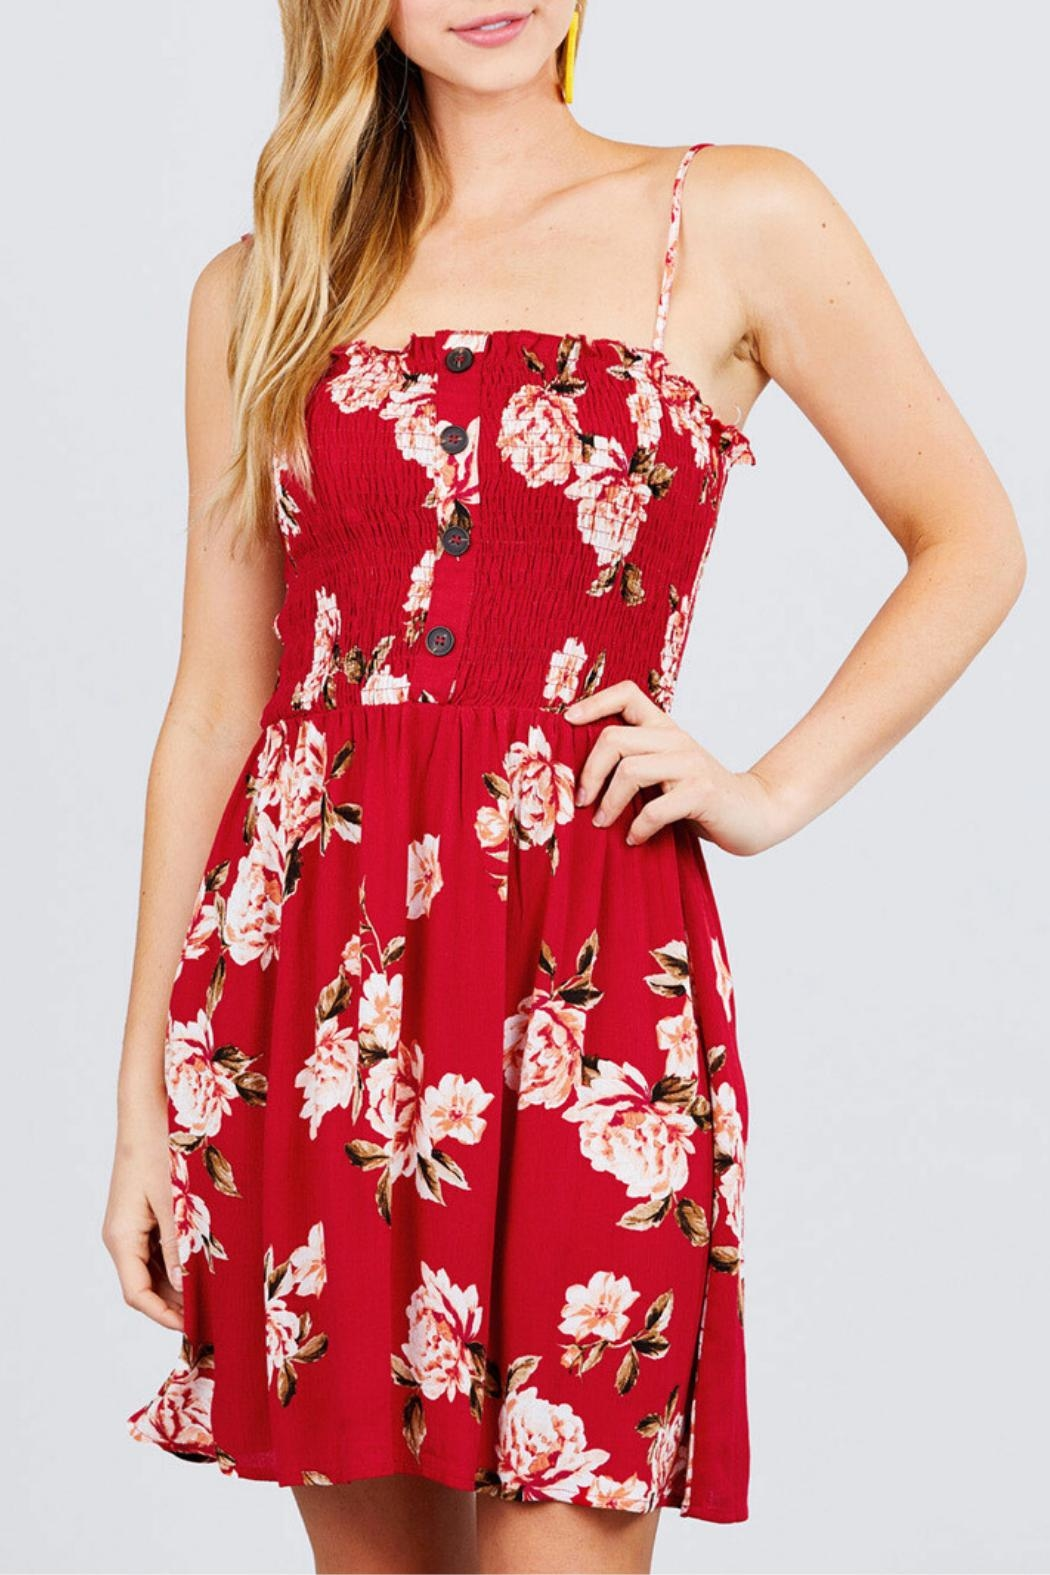 Active USA Red Floral Dress - Main Image